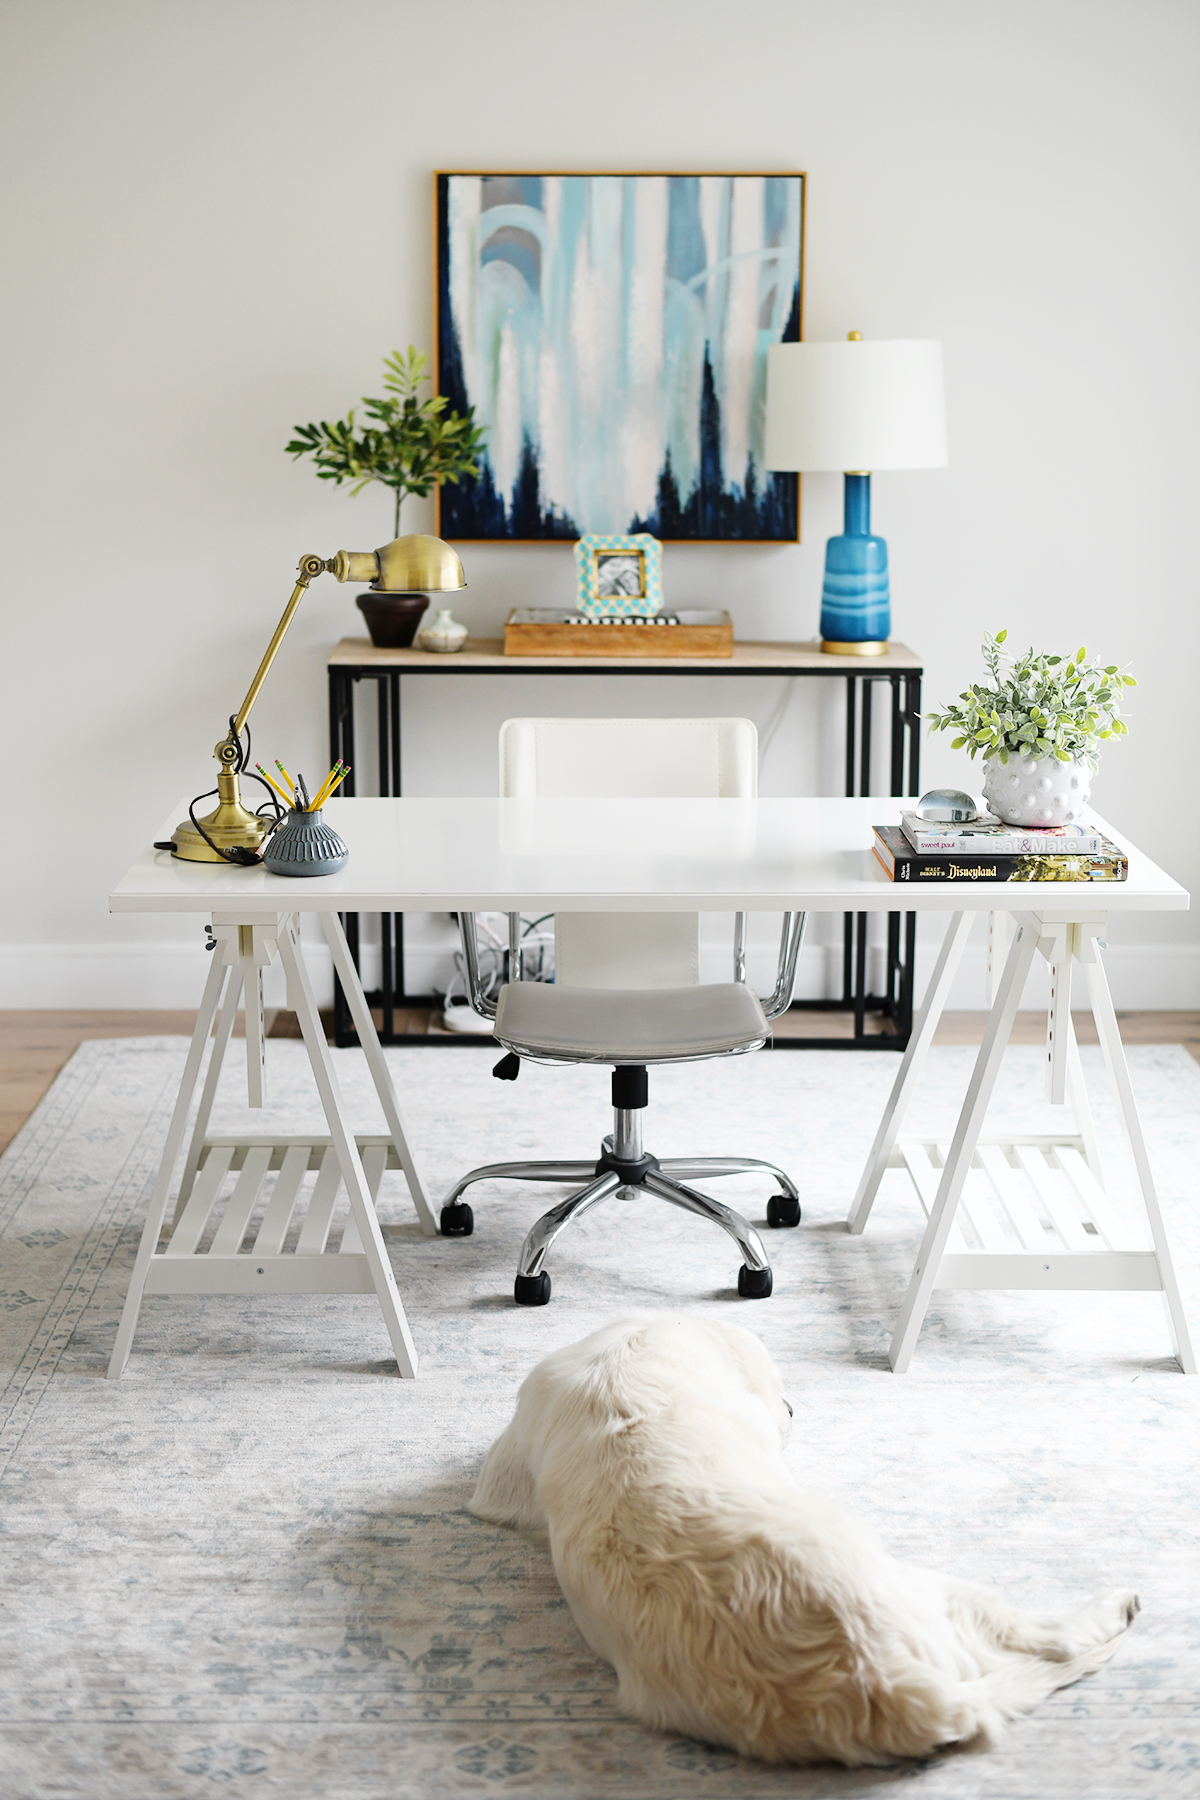 Creating a home office 4